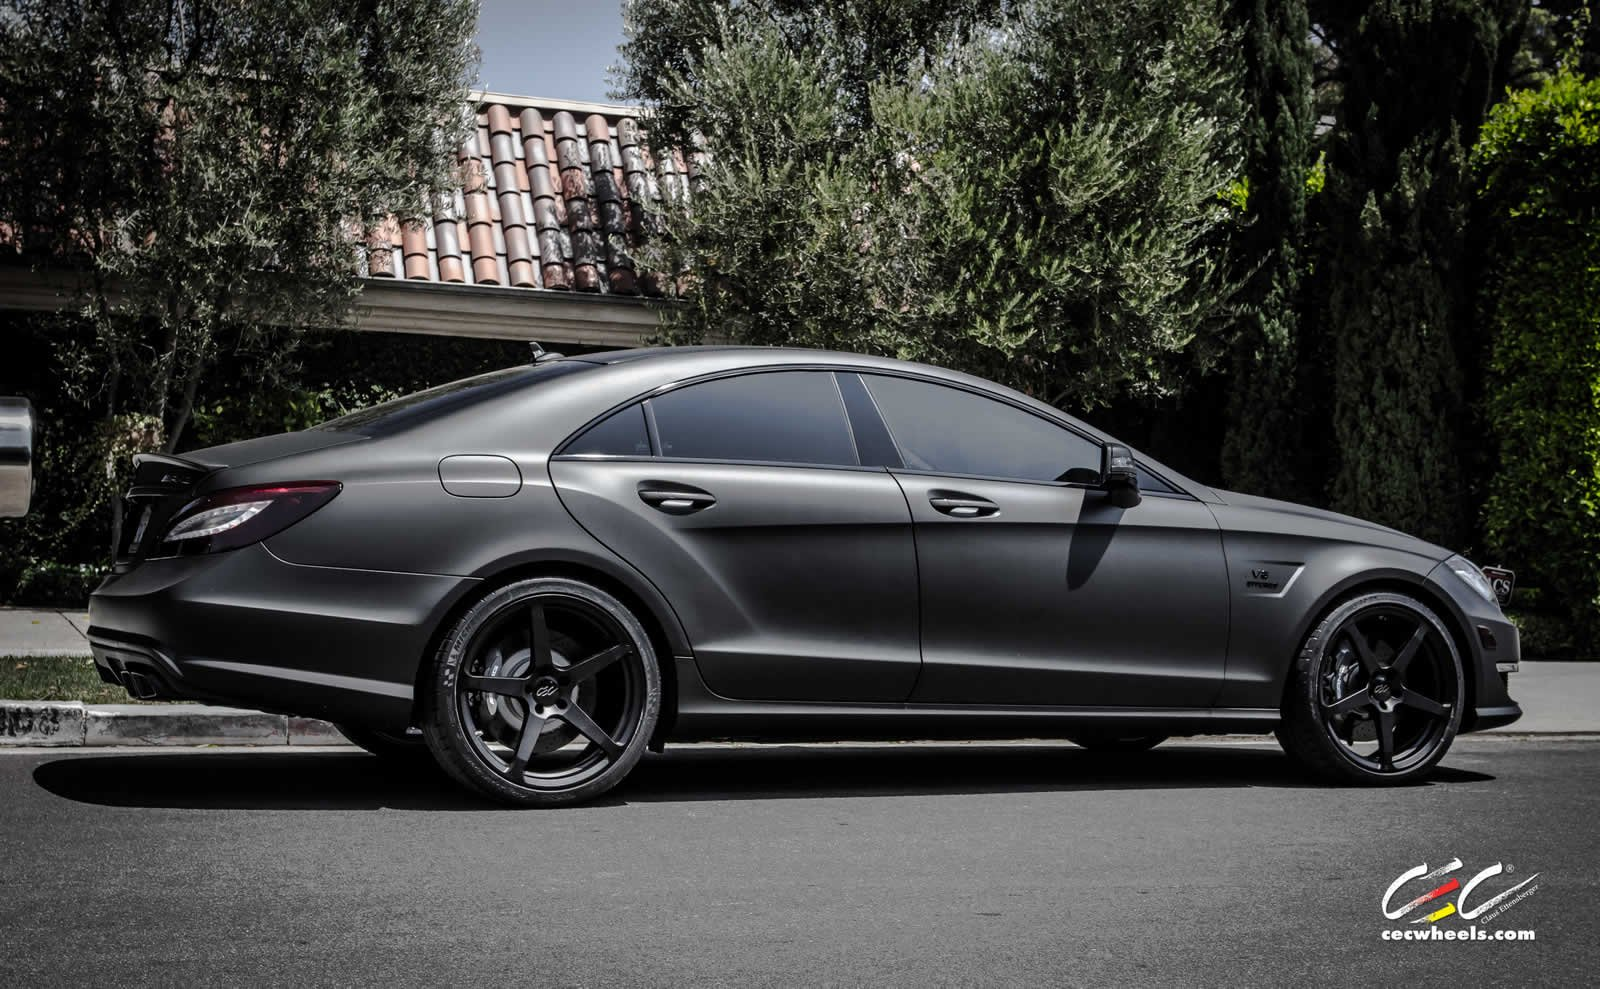 2015 cec wheels tuning cars mercedes benz carlsson cls 63. Black Bedroom Furniture Sets. Home Design Ideas